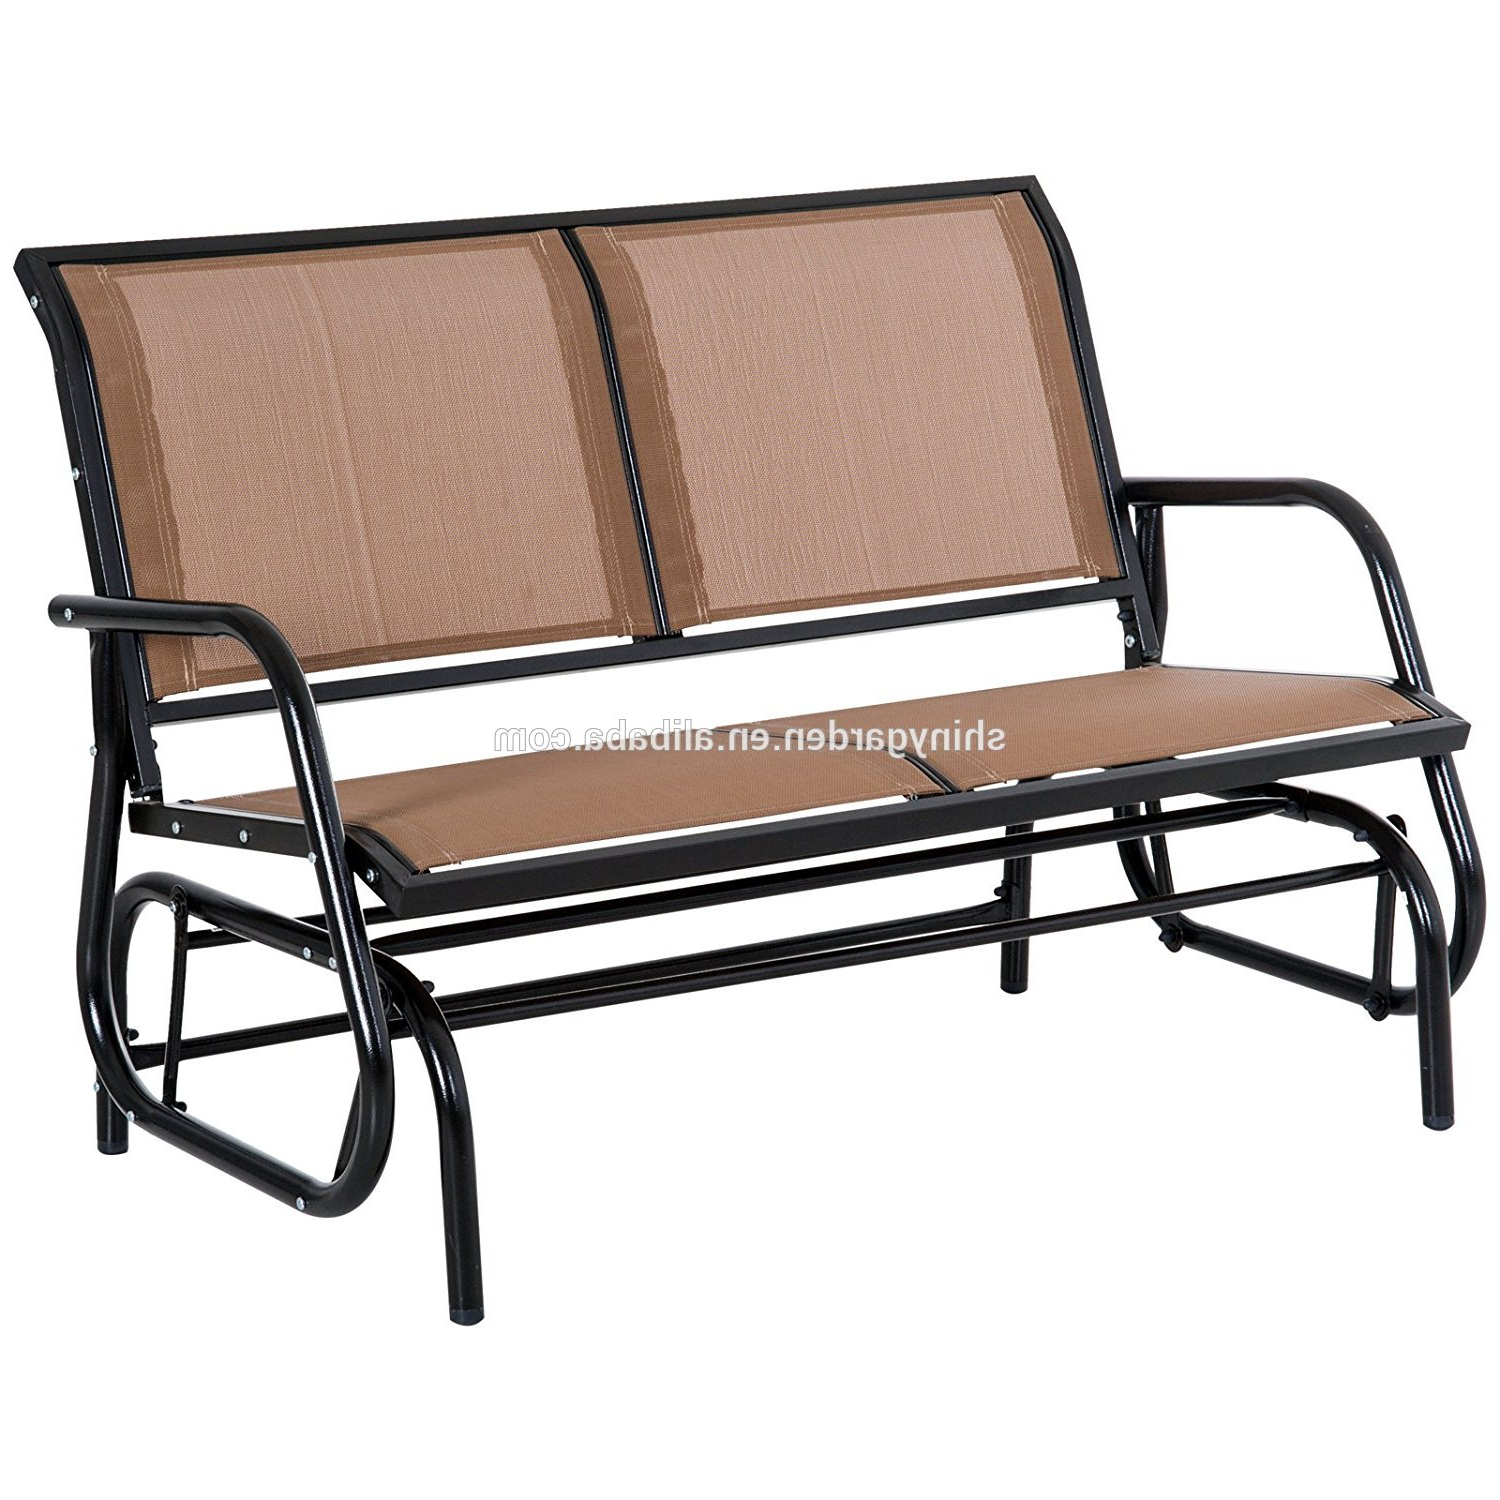 Outdoor Swing Glider Chair,patio Bench For 2 Person,garden Rocking Seating – Buy Swing Glider Chair Product On Alibaba Within Trendy Outdoor Patio Swing Glider Bench Chairs (Gallery 12 of 30)